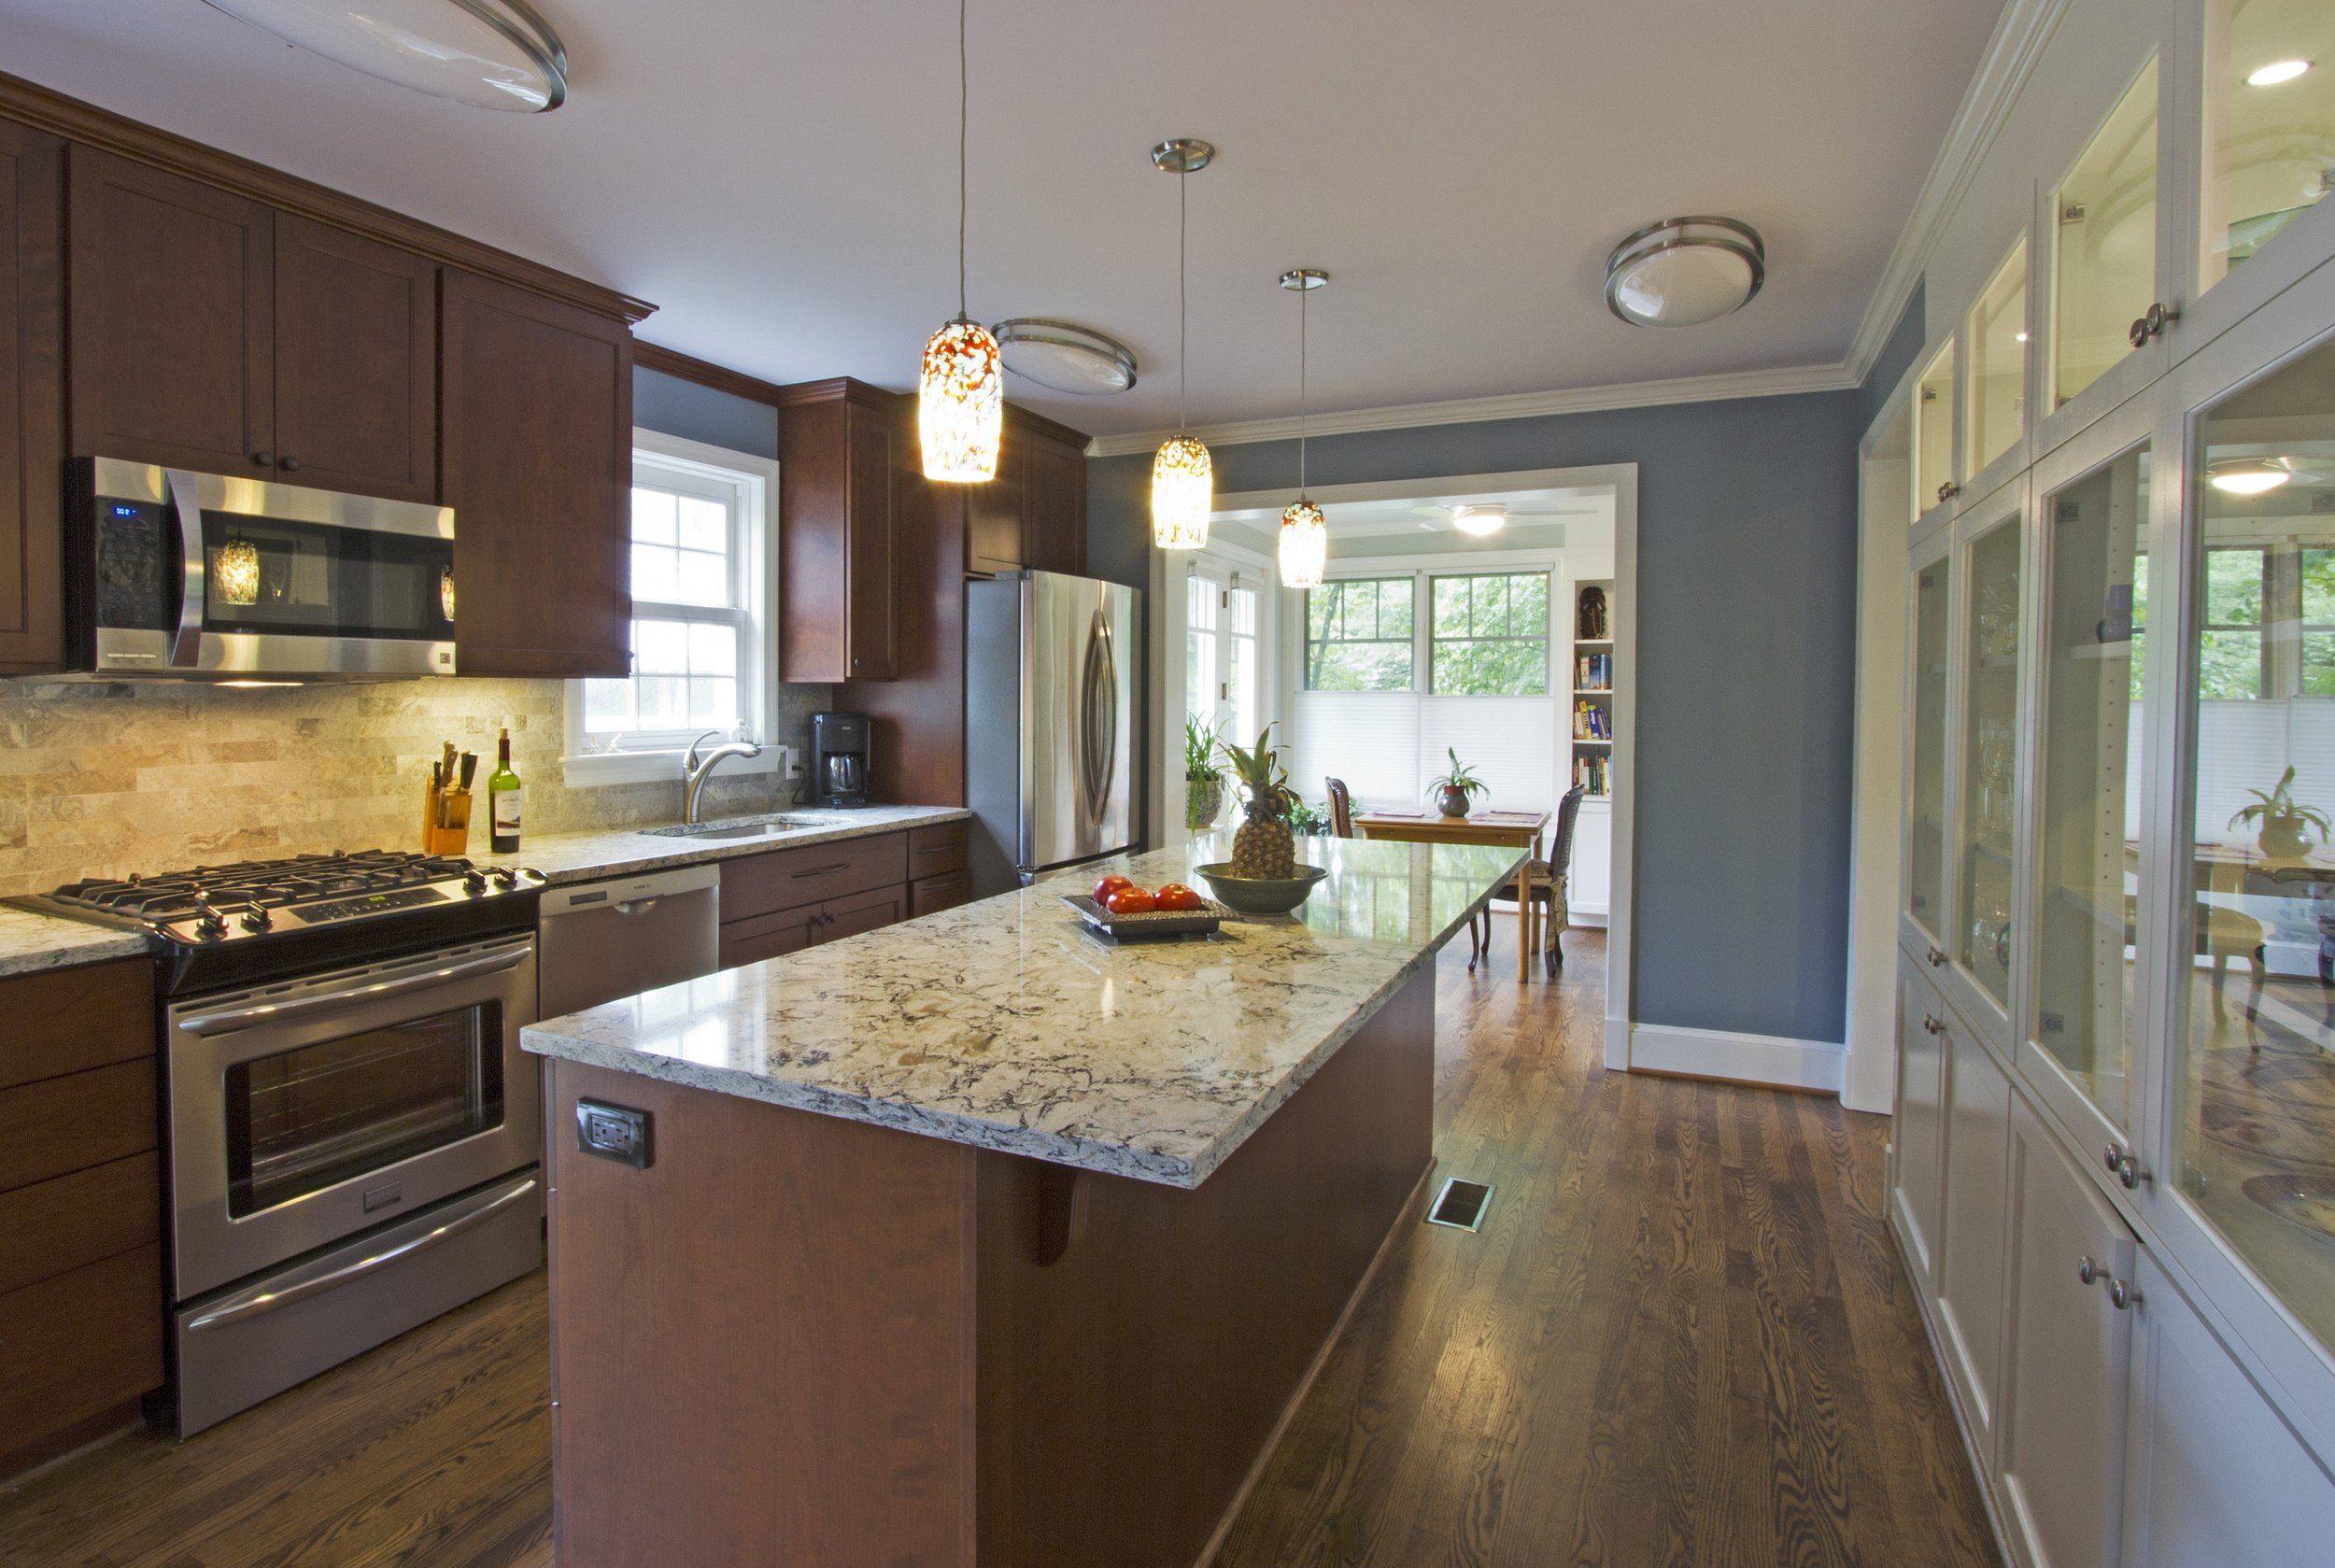 The Galley style of kitchen islands is the most straightforward, and works well for most kitchen layouts. It also provides optimal amounts of storage, and is best paired with bar-style seating. This kitchen island would work well for someone looking to maximize their storage space or have additional seating in their kitchen.